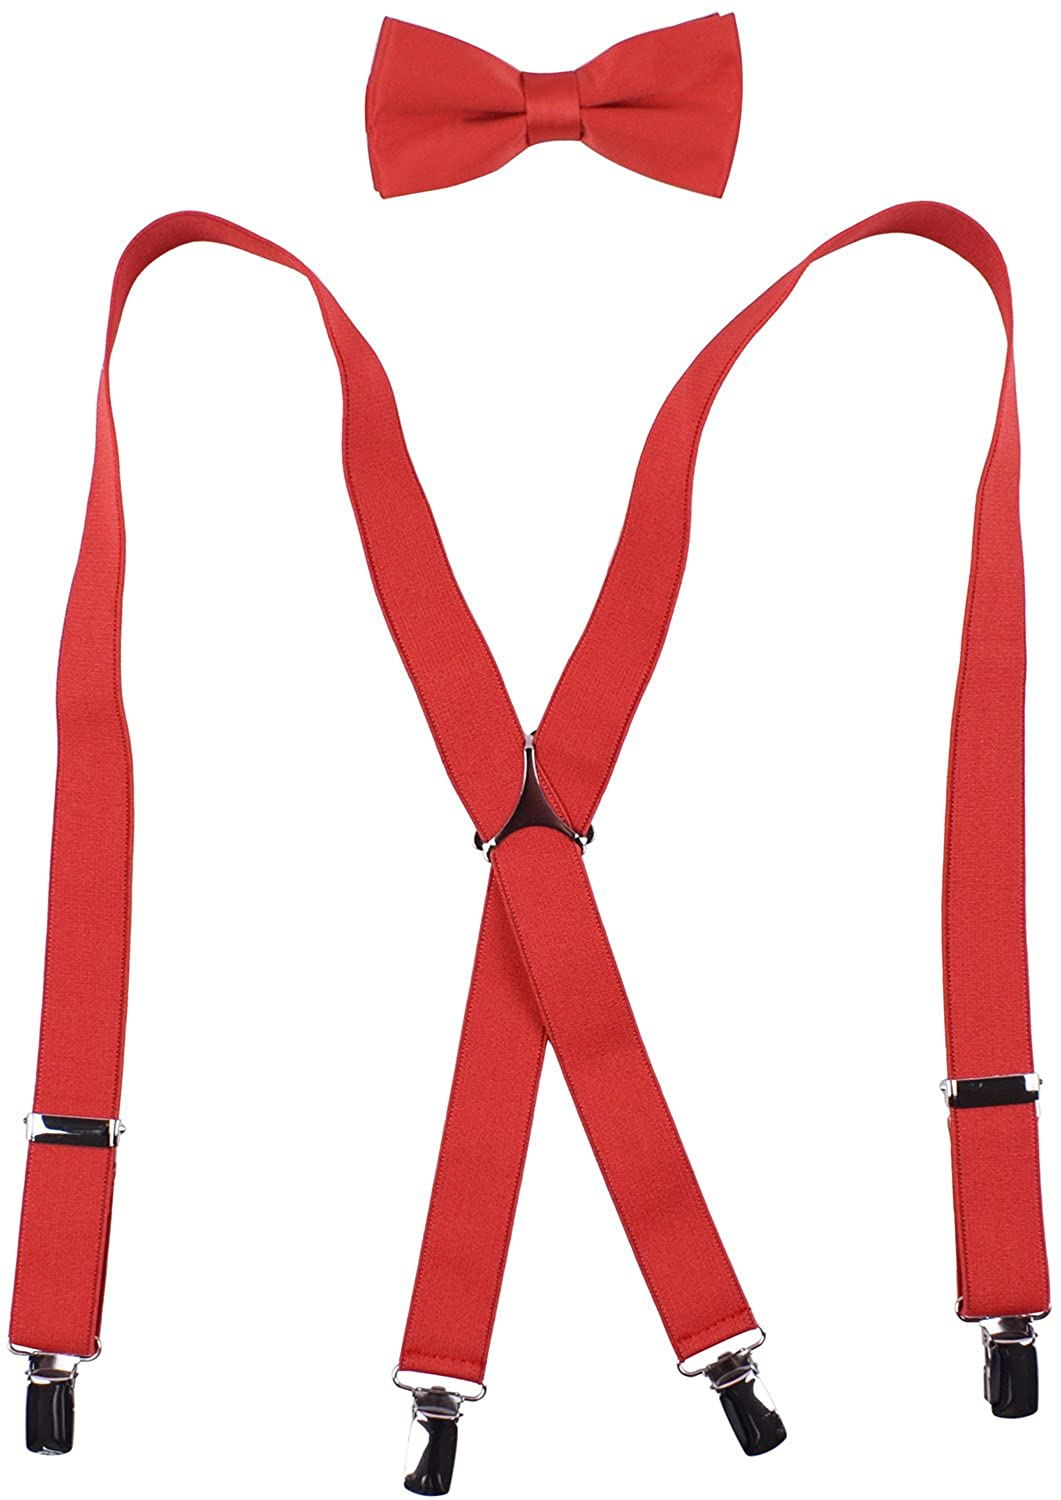 ed3a49d9debc Material - Suspenders: Microfiber, Rubber, Stainless Steel. Bow tie: Satin  Polyester. Sizes - 22